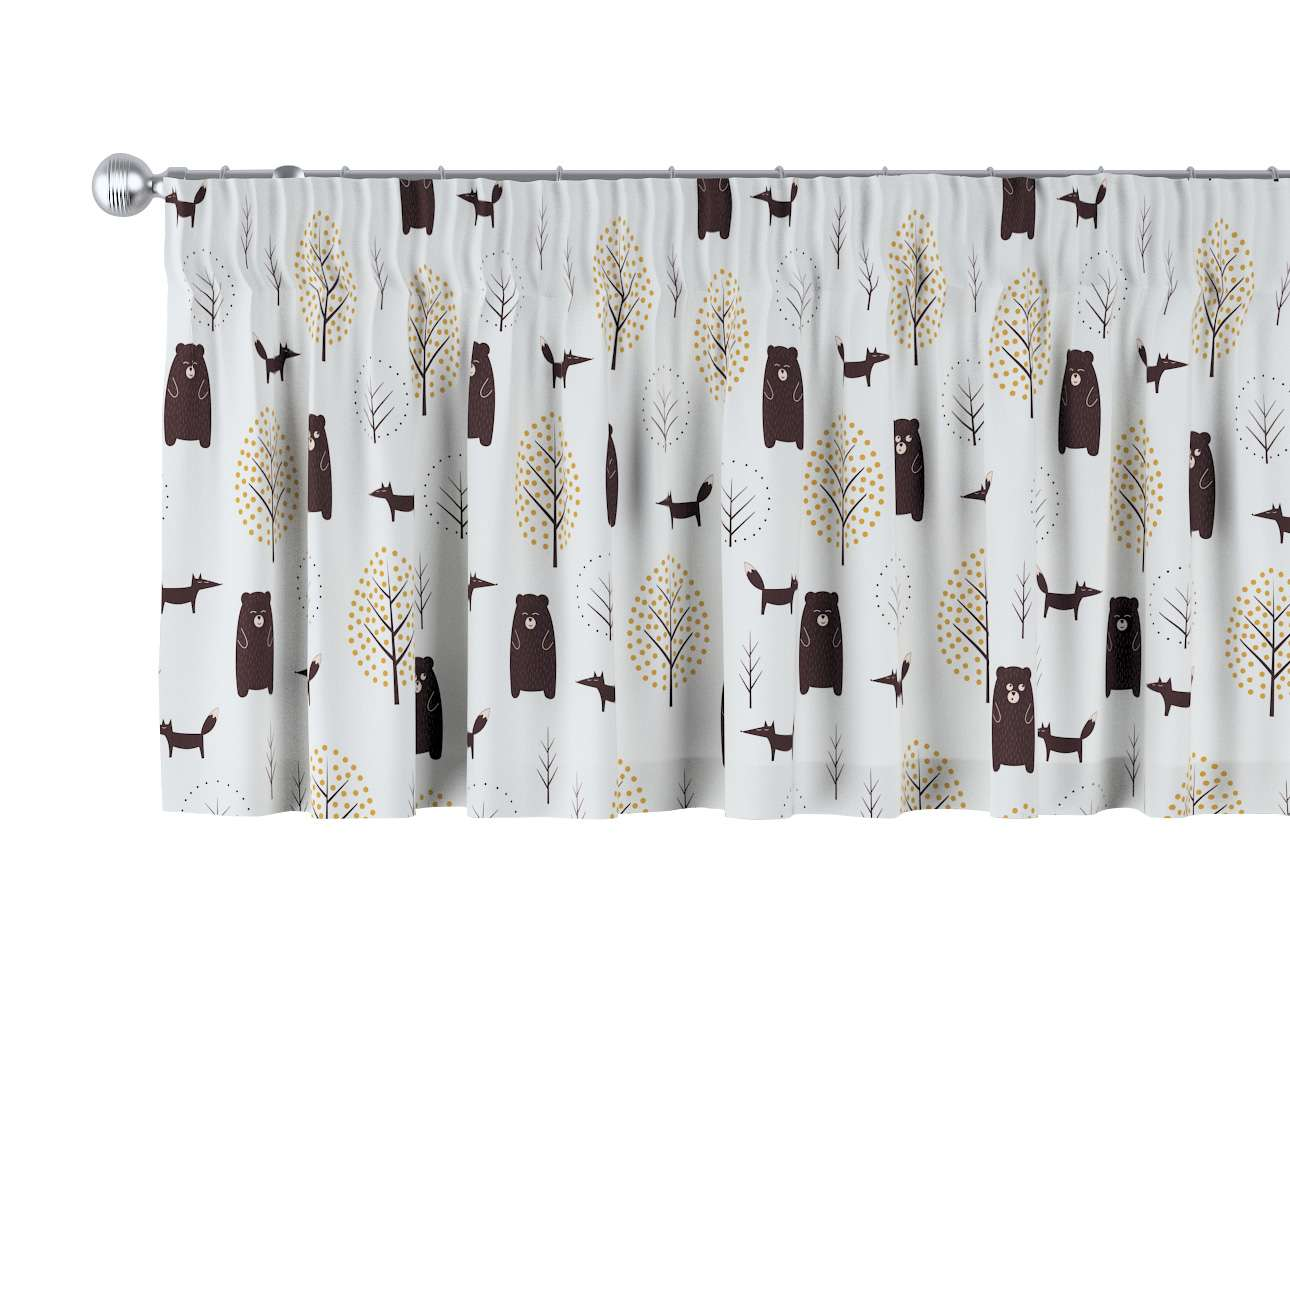 Lambrequin with gathering tape in collection Magic Collection, fabric: 500-19